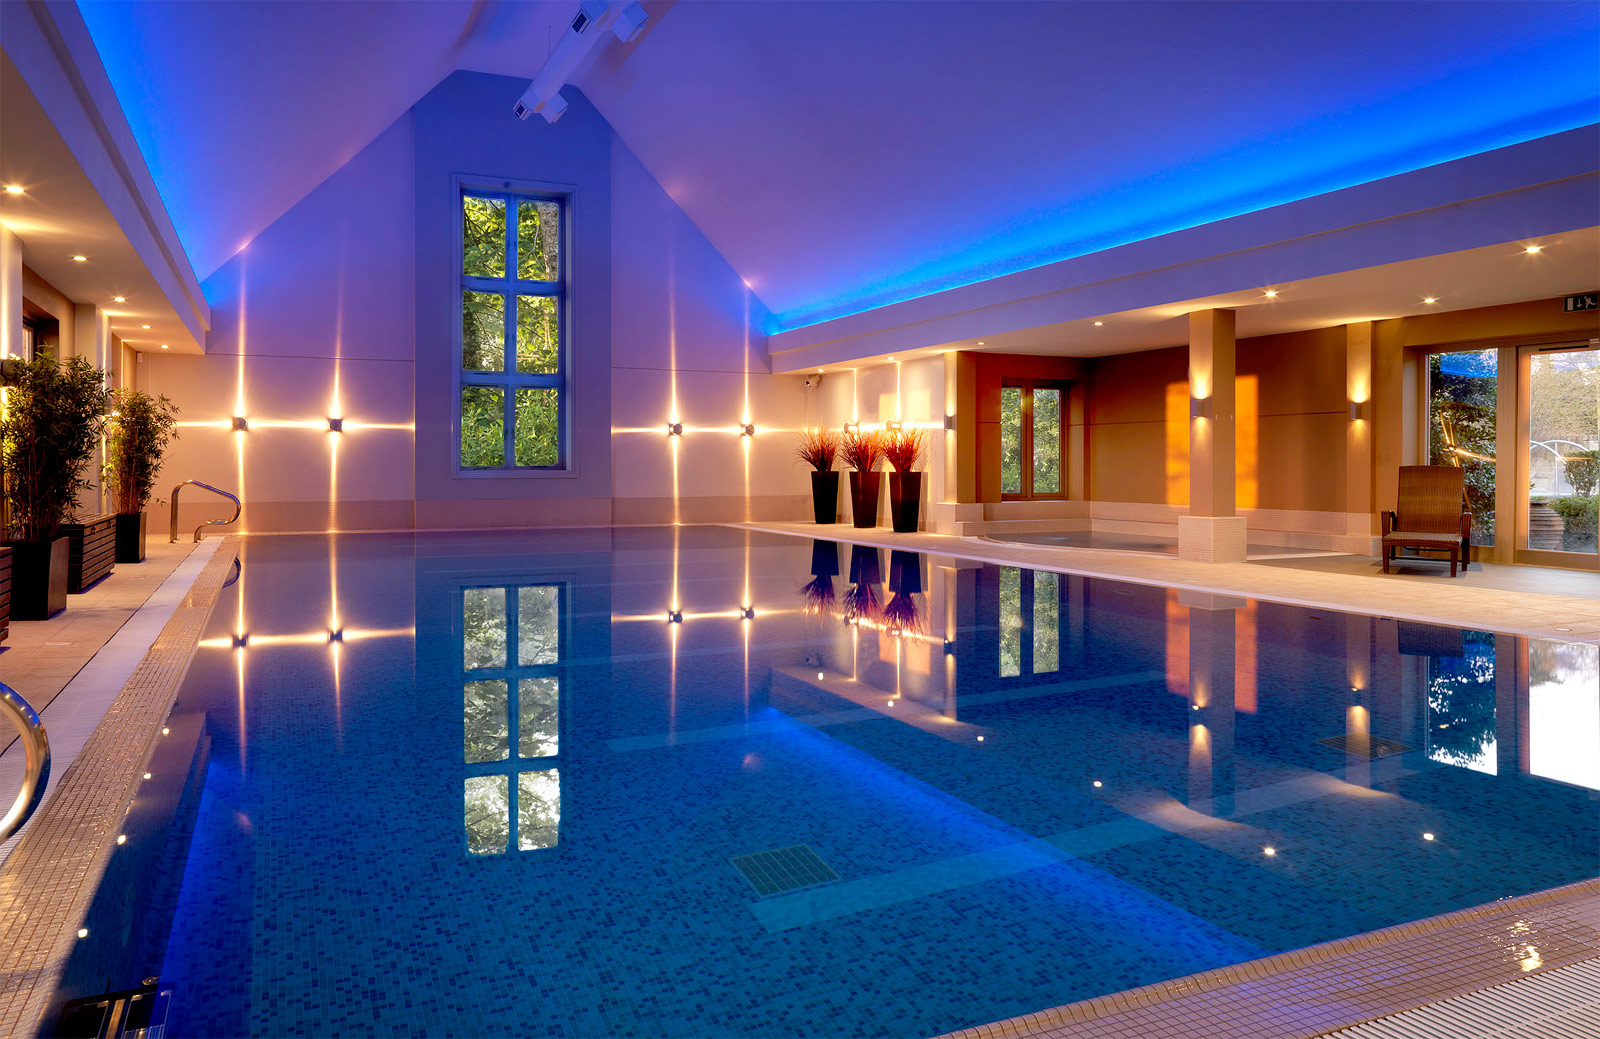 The indoor swimming pool at Calcot